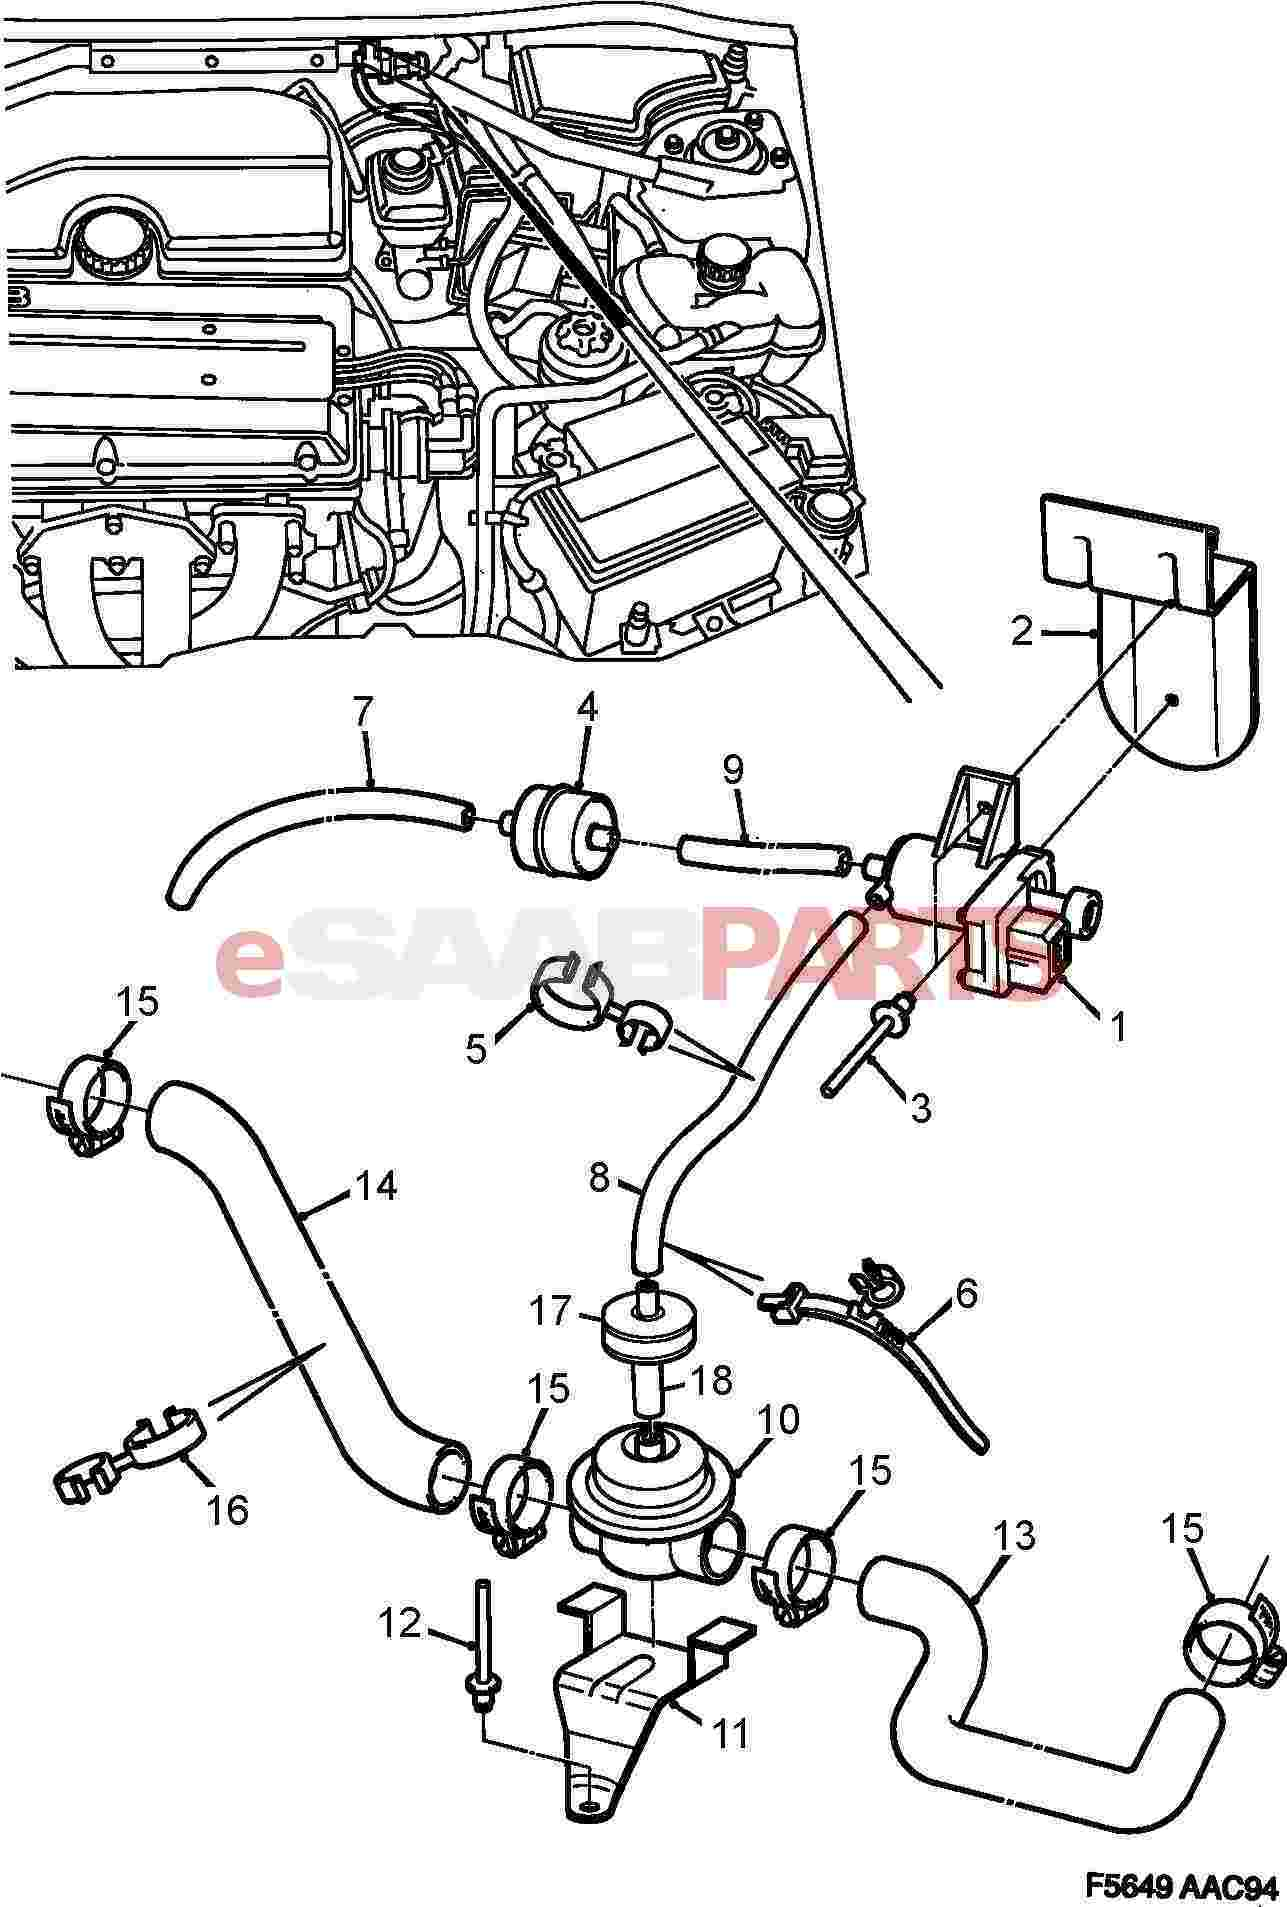 [90466214] SAAB Secondary Air Injection Control Valve